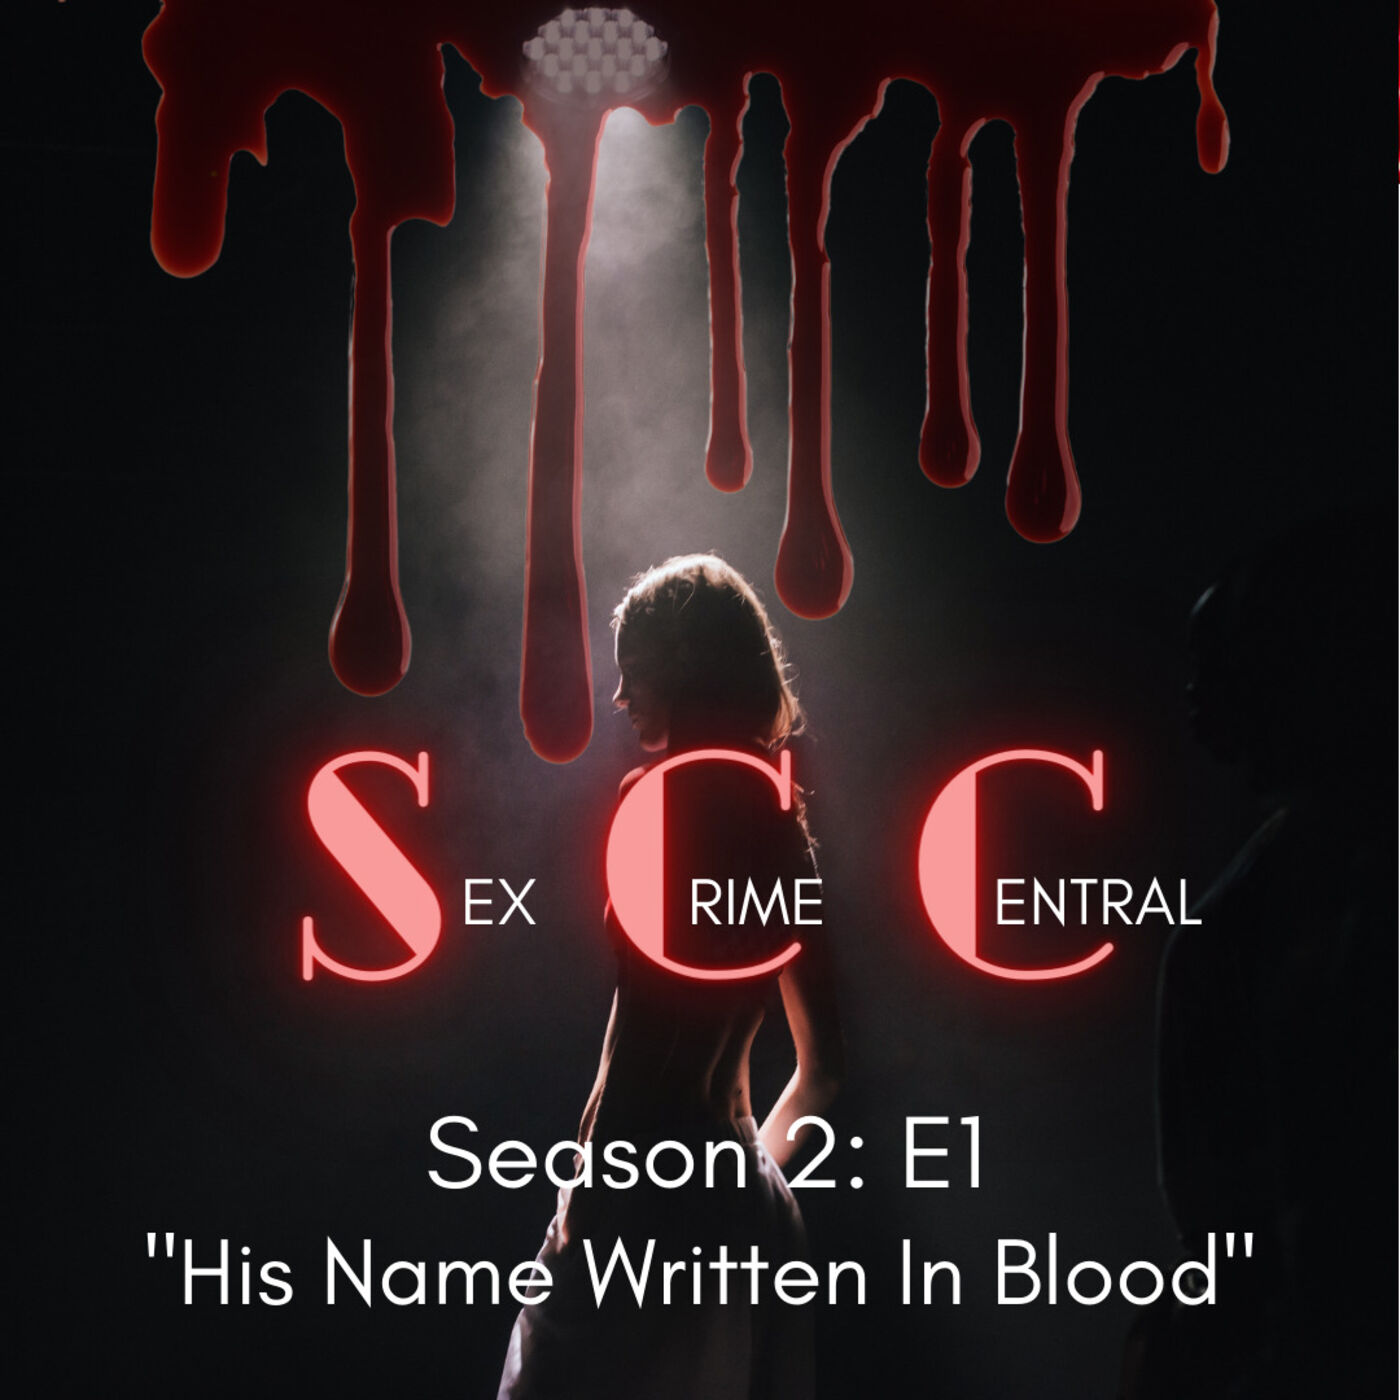 His Name Written In Blood